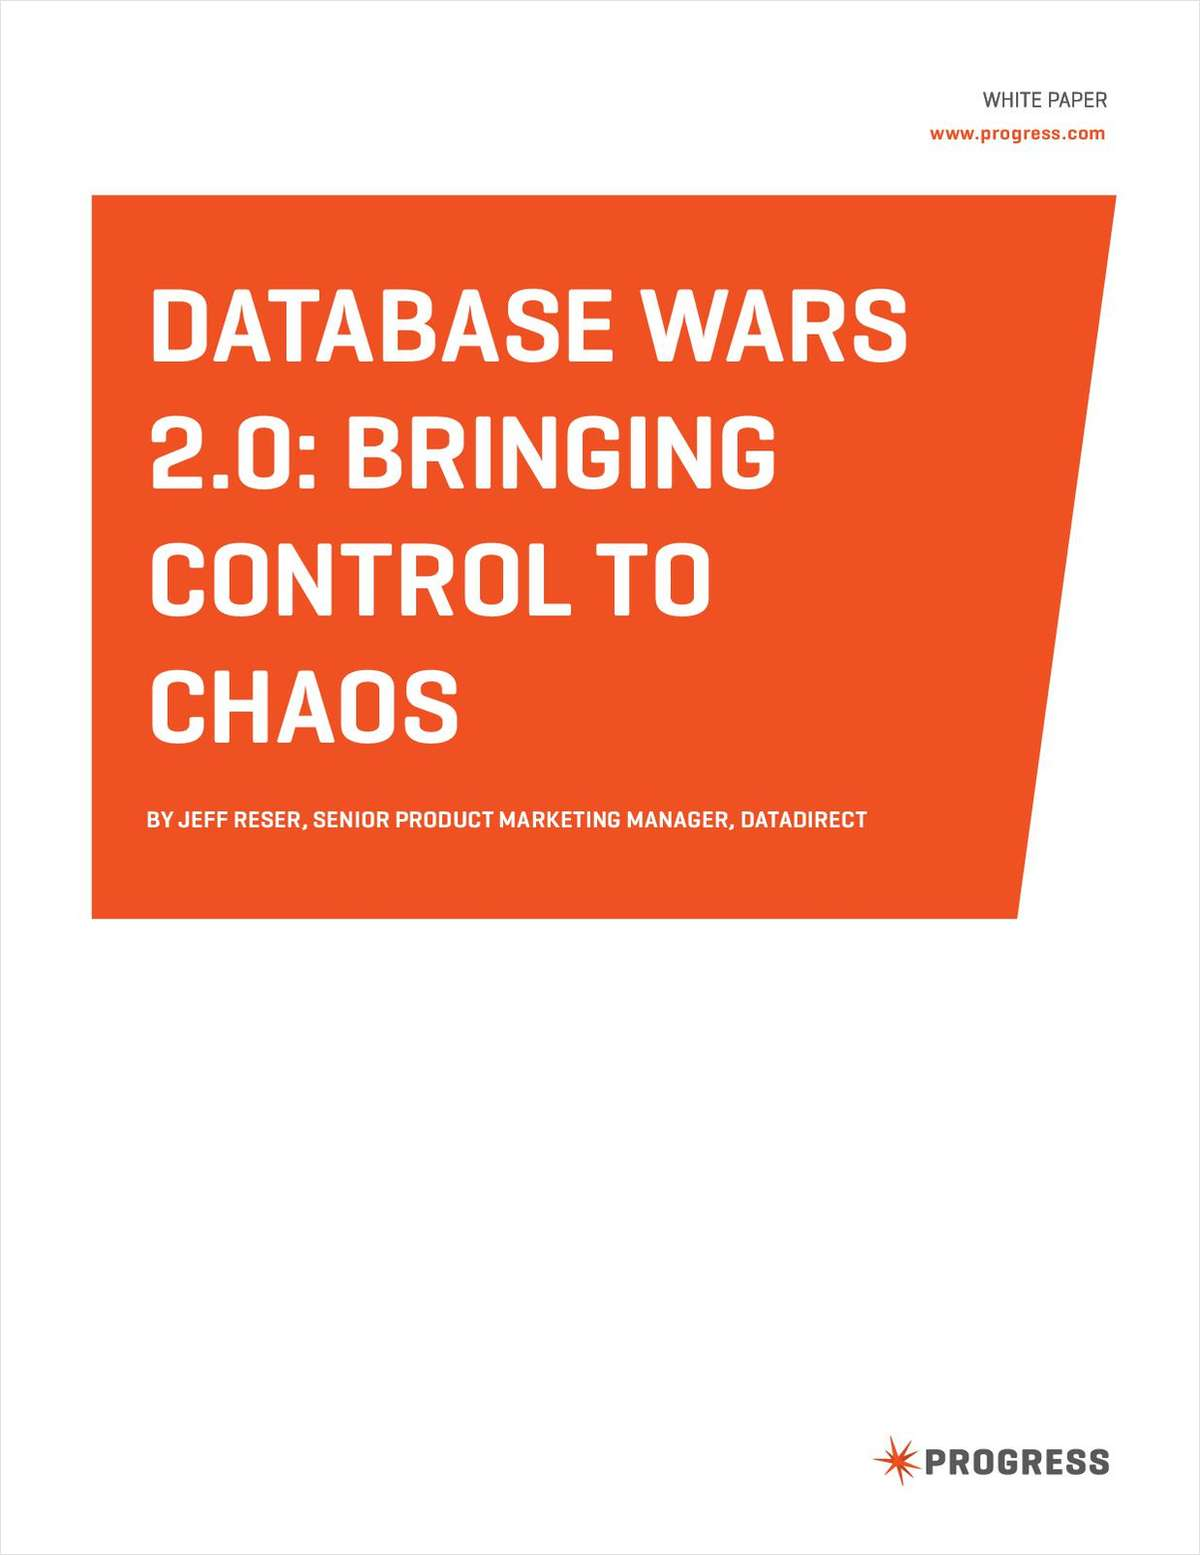 Database Wars 2.0: Bringing Control To Chaos